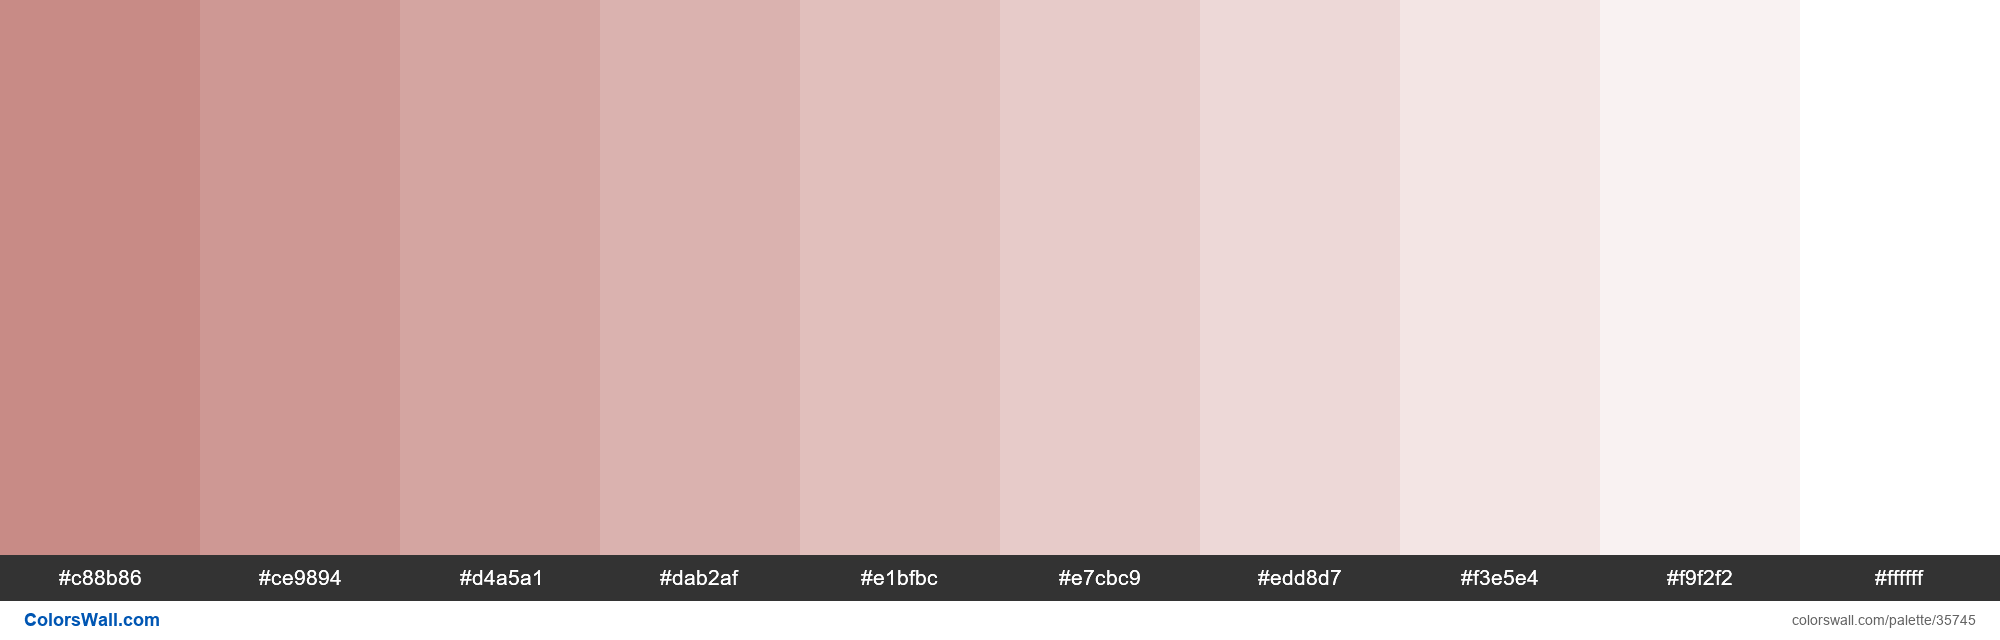 Tints XKCD Color brownish pink #c27e79 hex - #35745